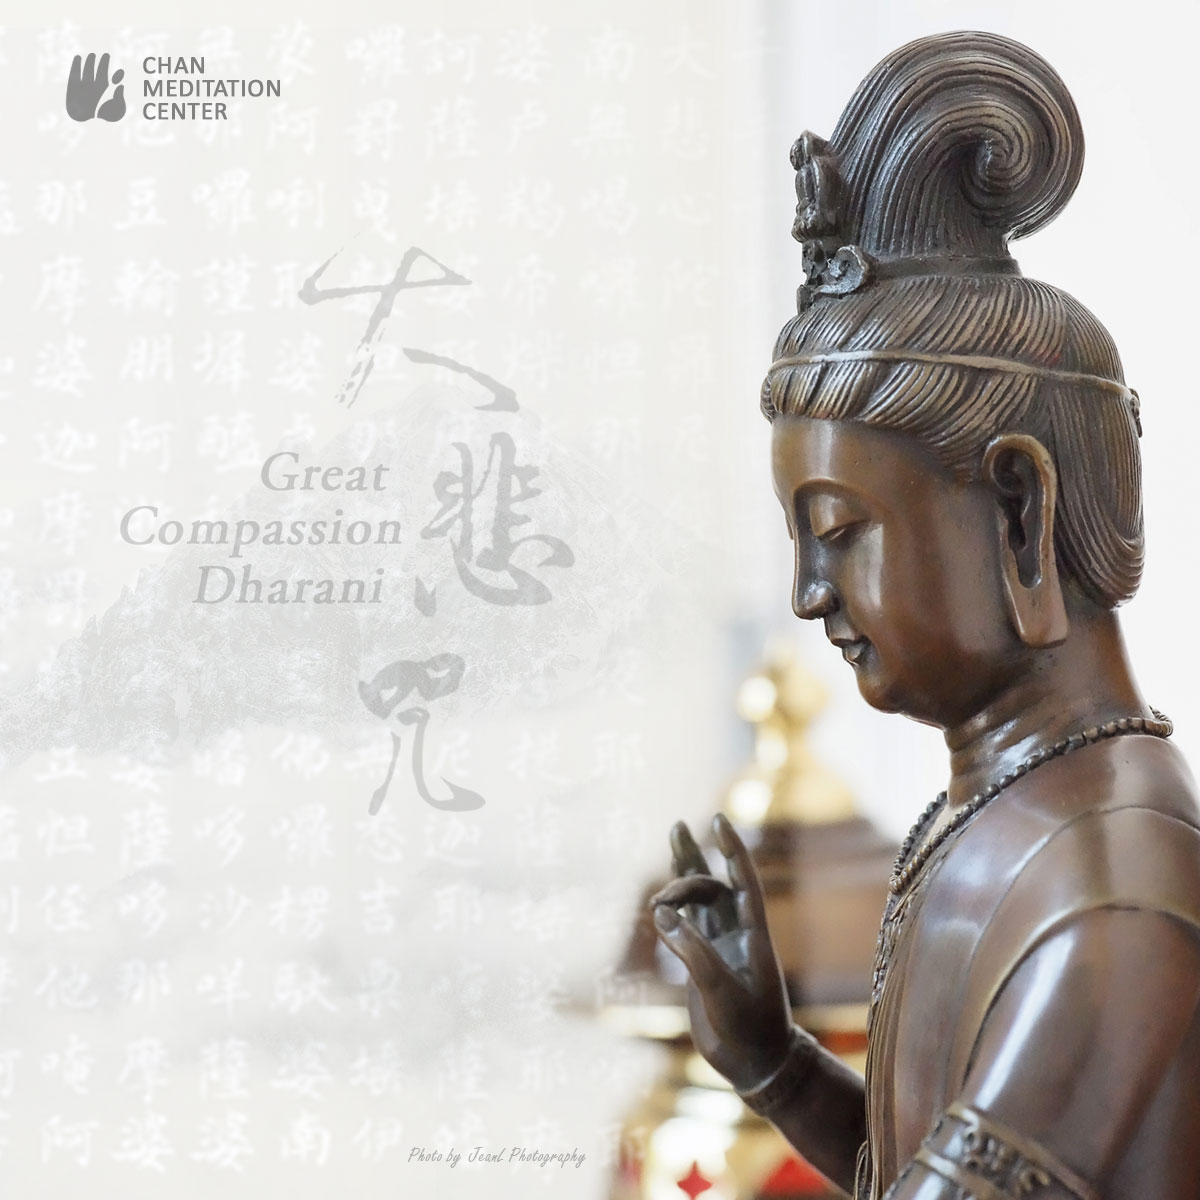 [Online] Great Compassion Dharani Evening Service (In Chinese)